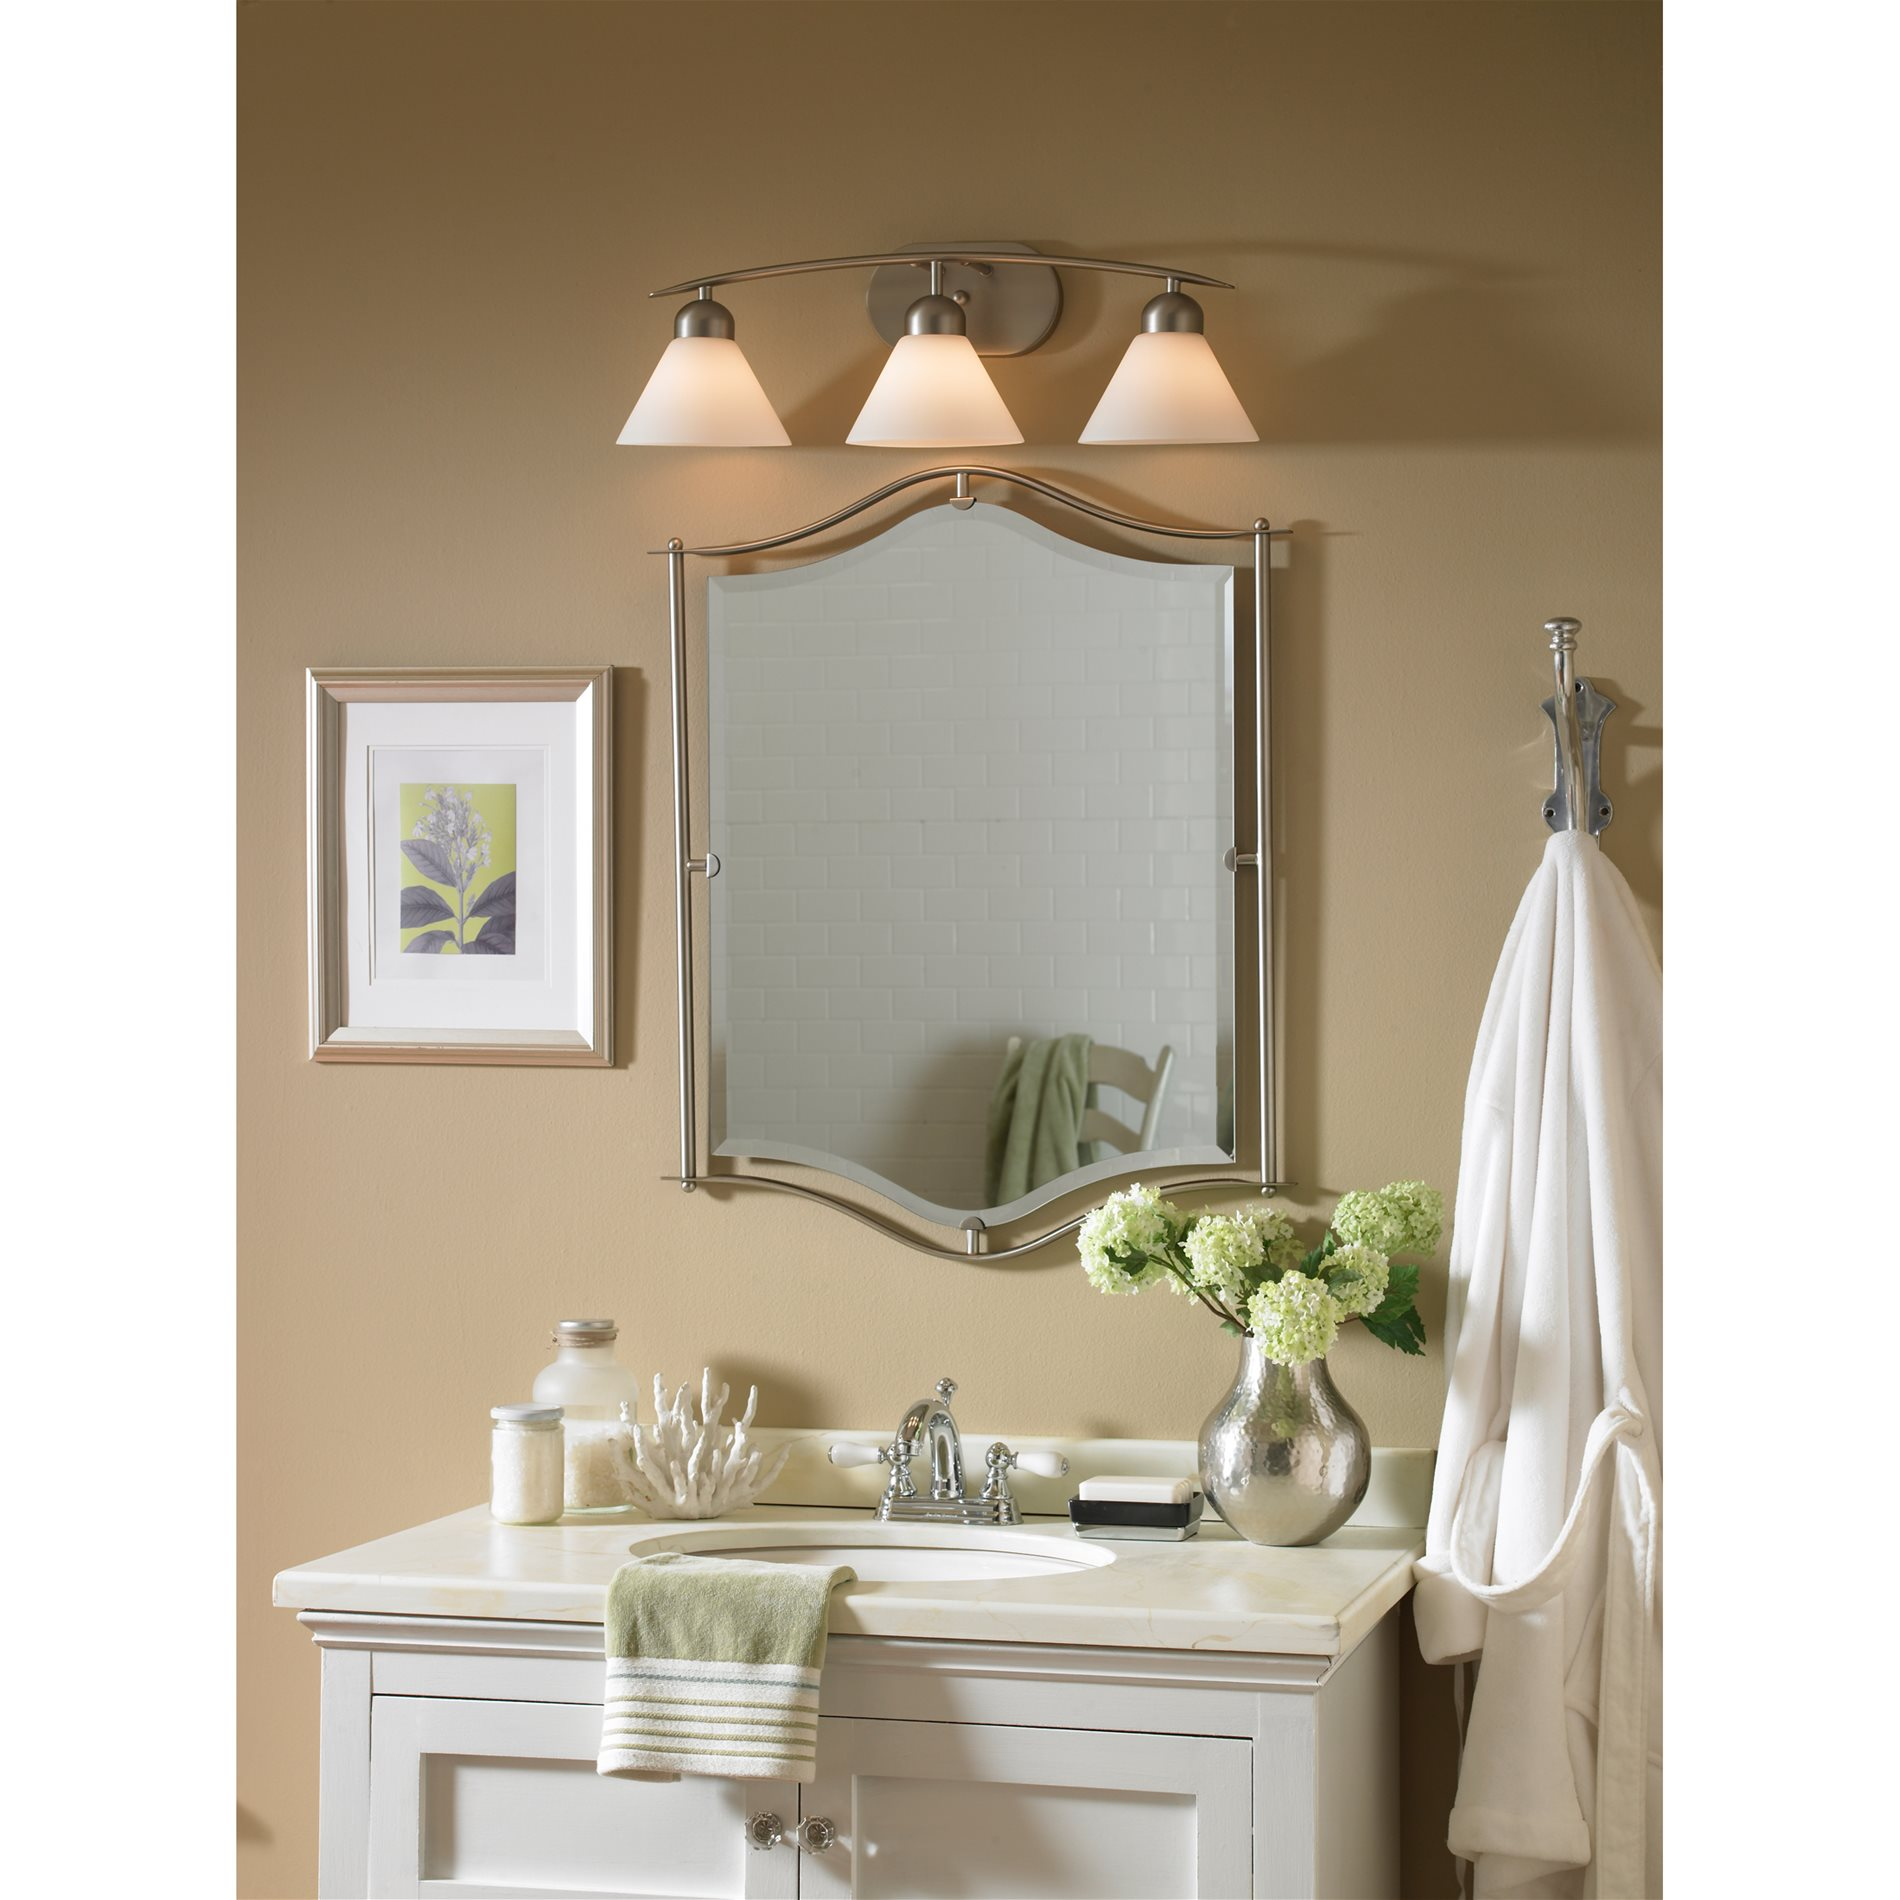 Quoizel Di8503es Demitri Modern Contemporary Bathroom Vanity Light Qz Di8503es